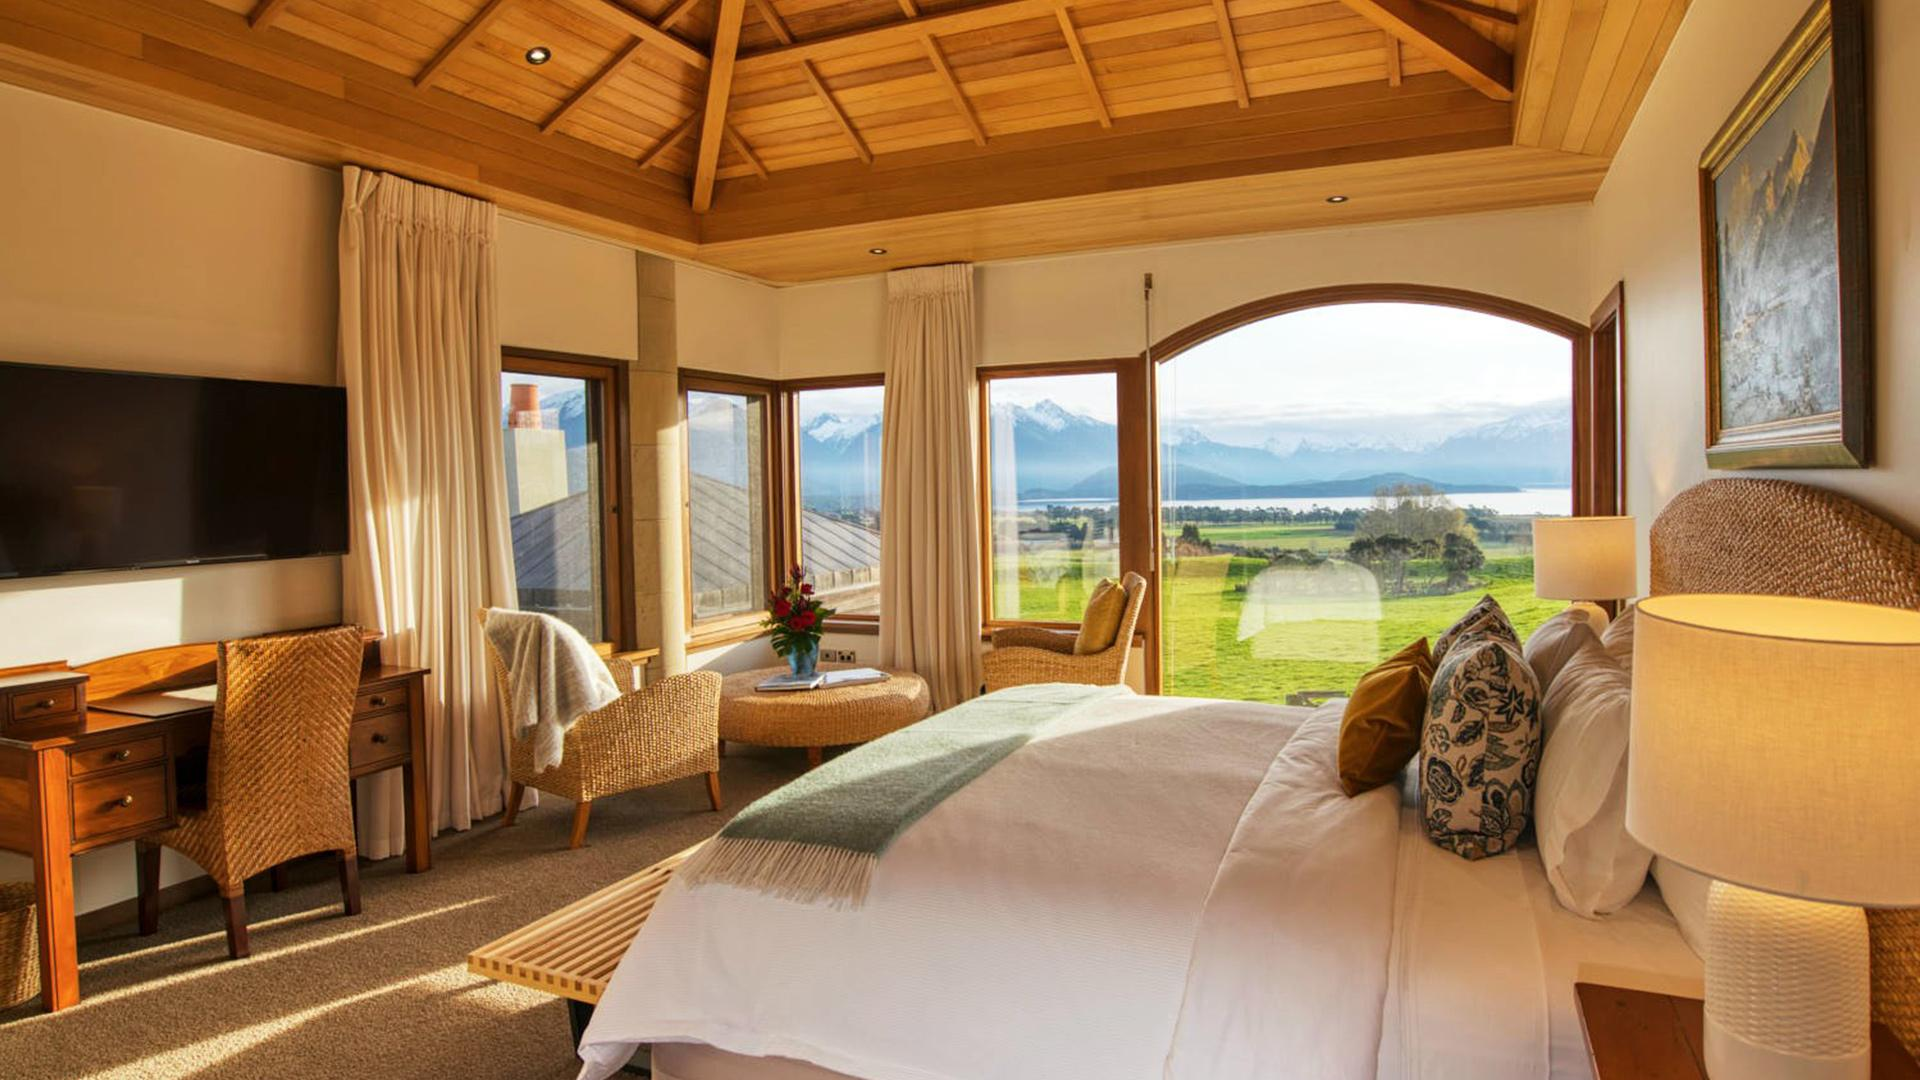 Premier Suite Winter Escape image 1 at Cabot Lodge by null, Southland, New Zealand